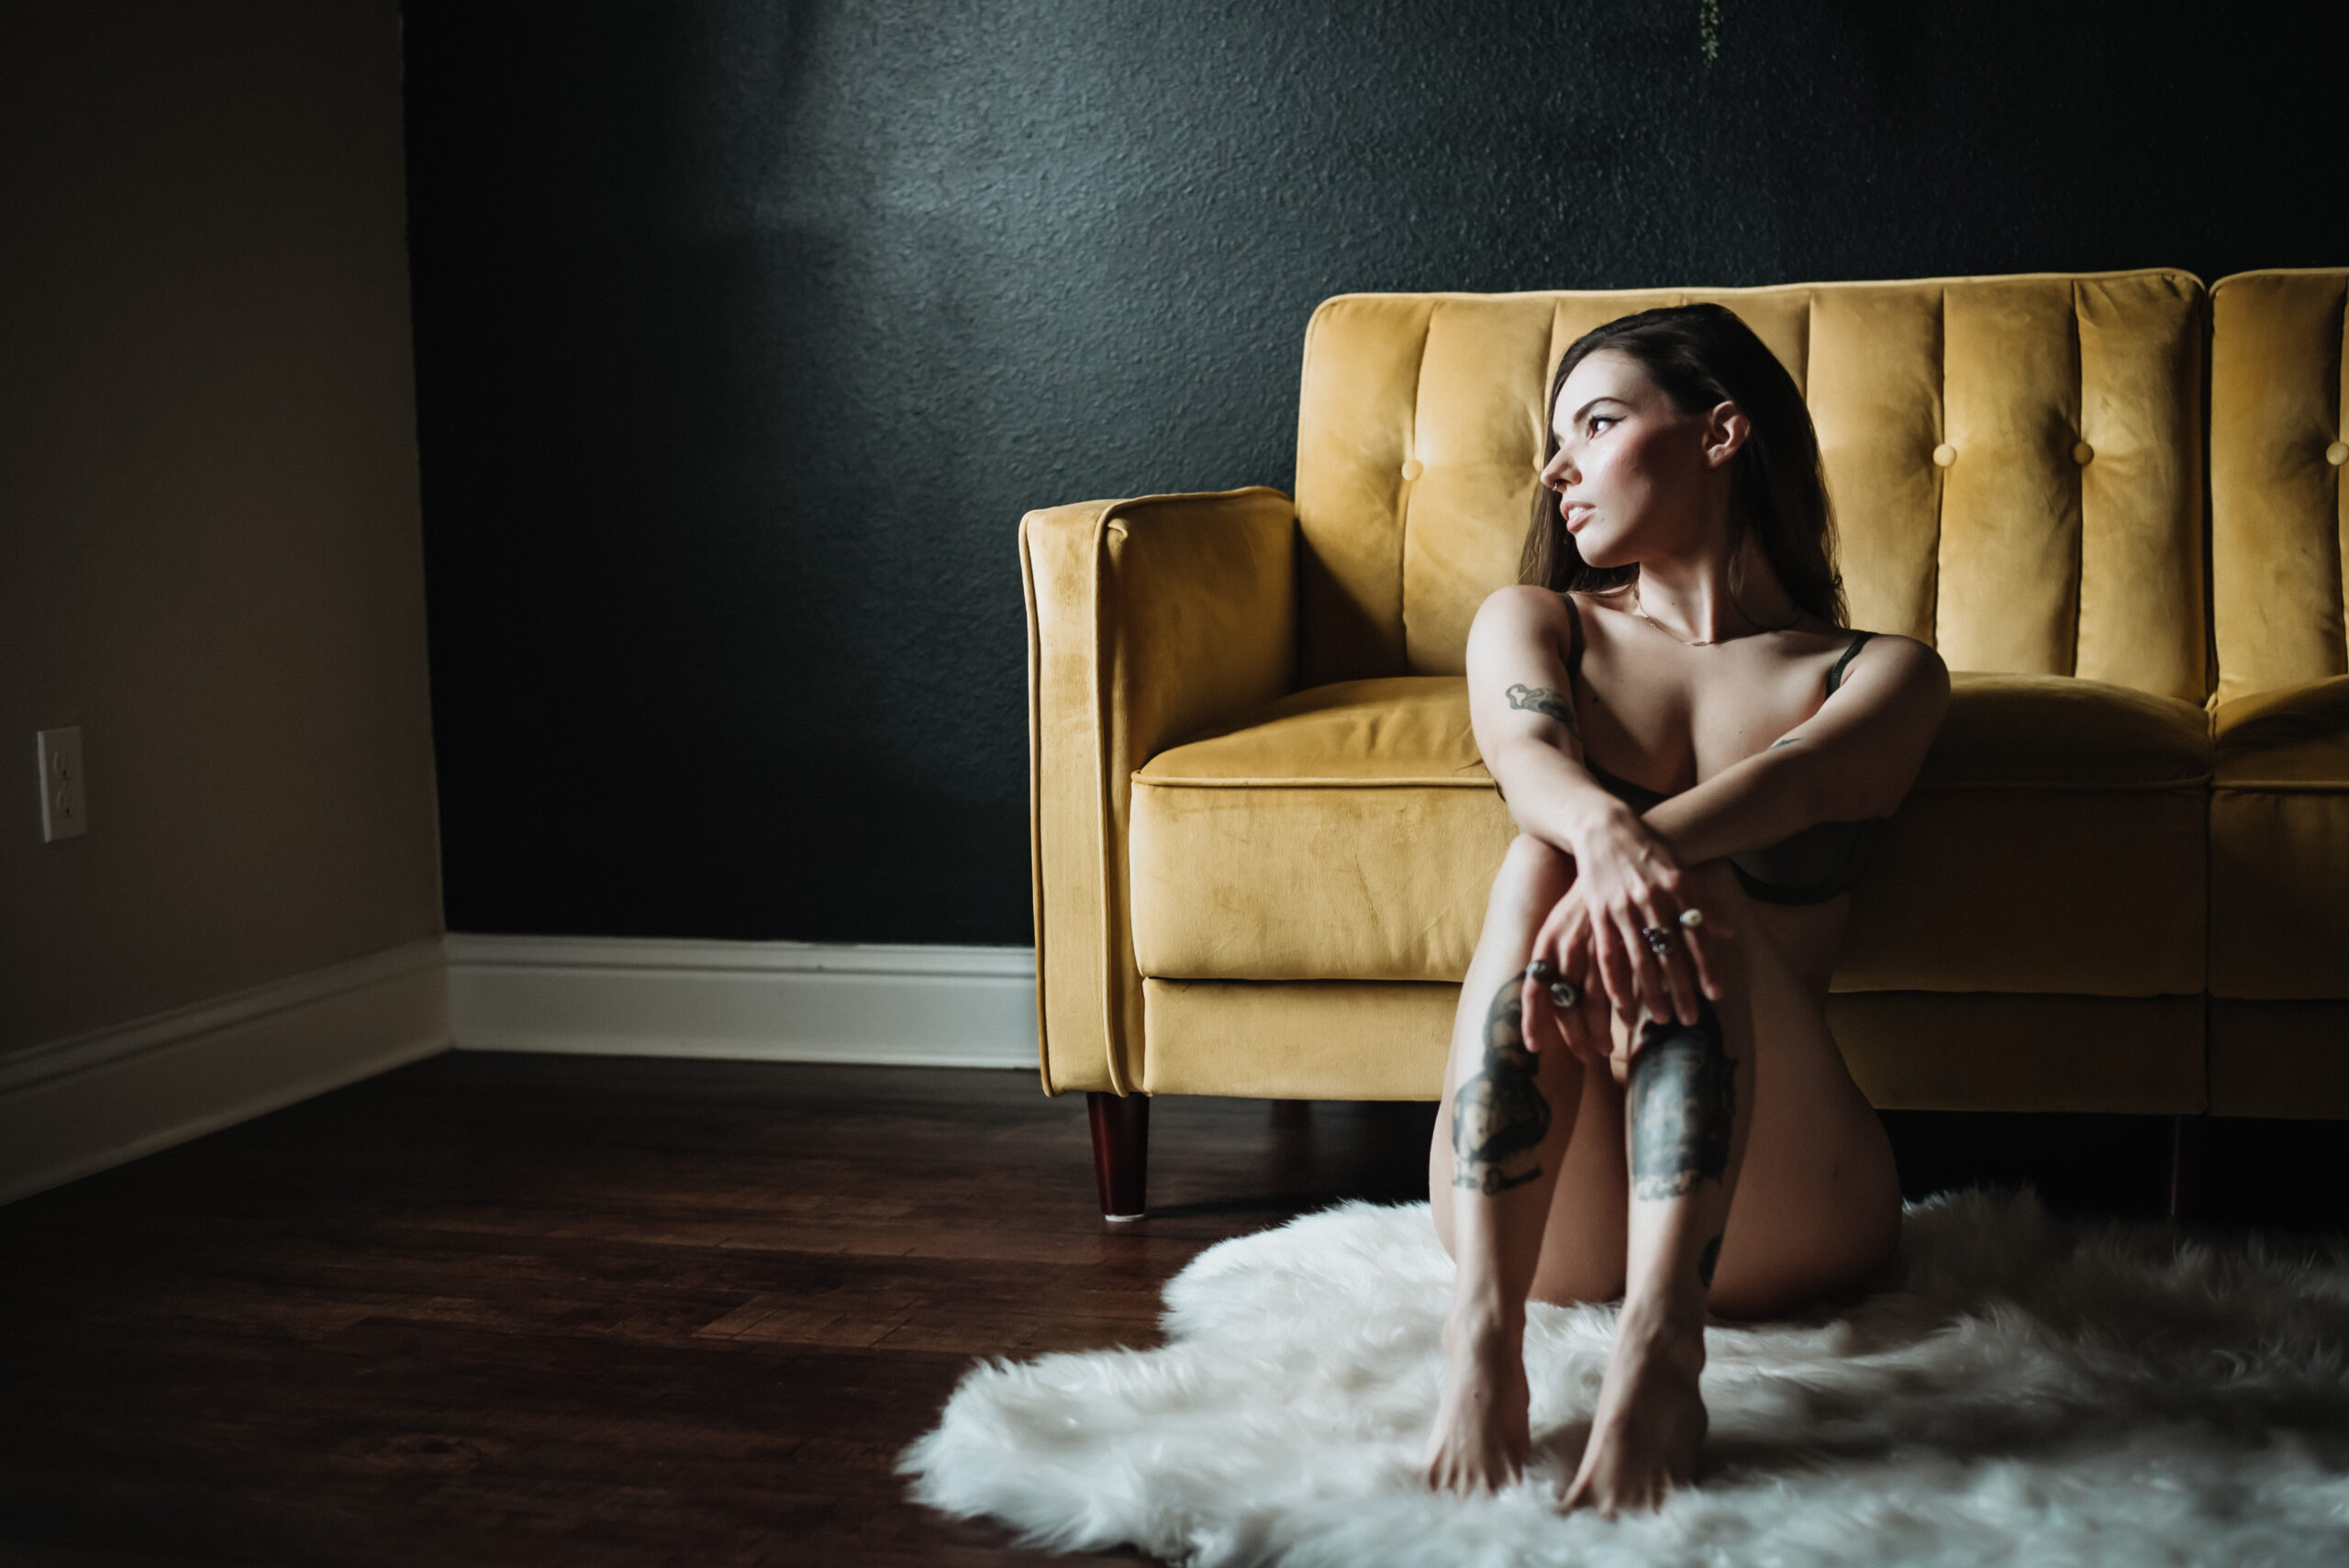 Boudoir photograph of a girl sitting on the floor with her wrists crossed on her knees next to a yellow sofa